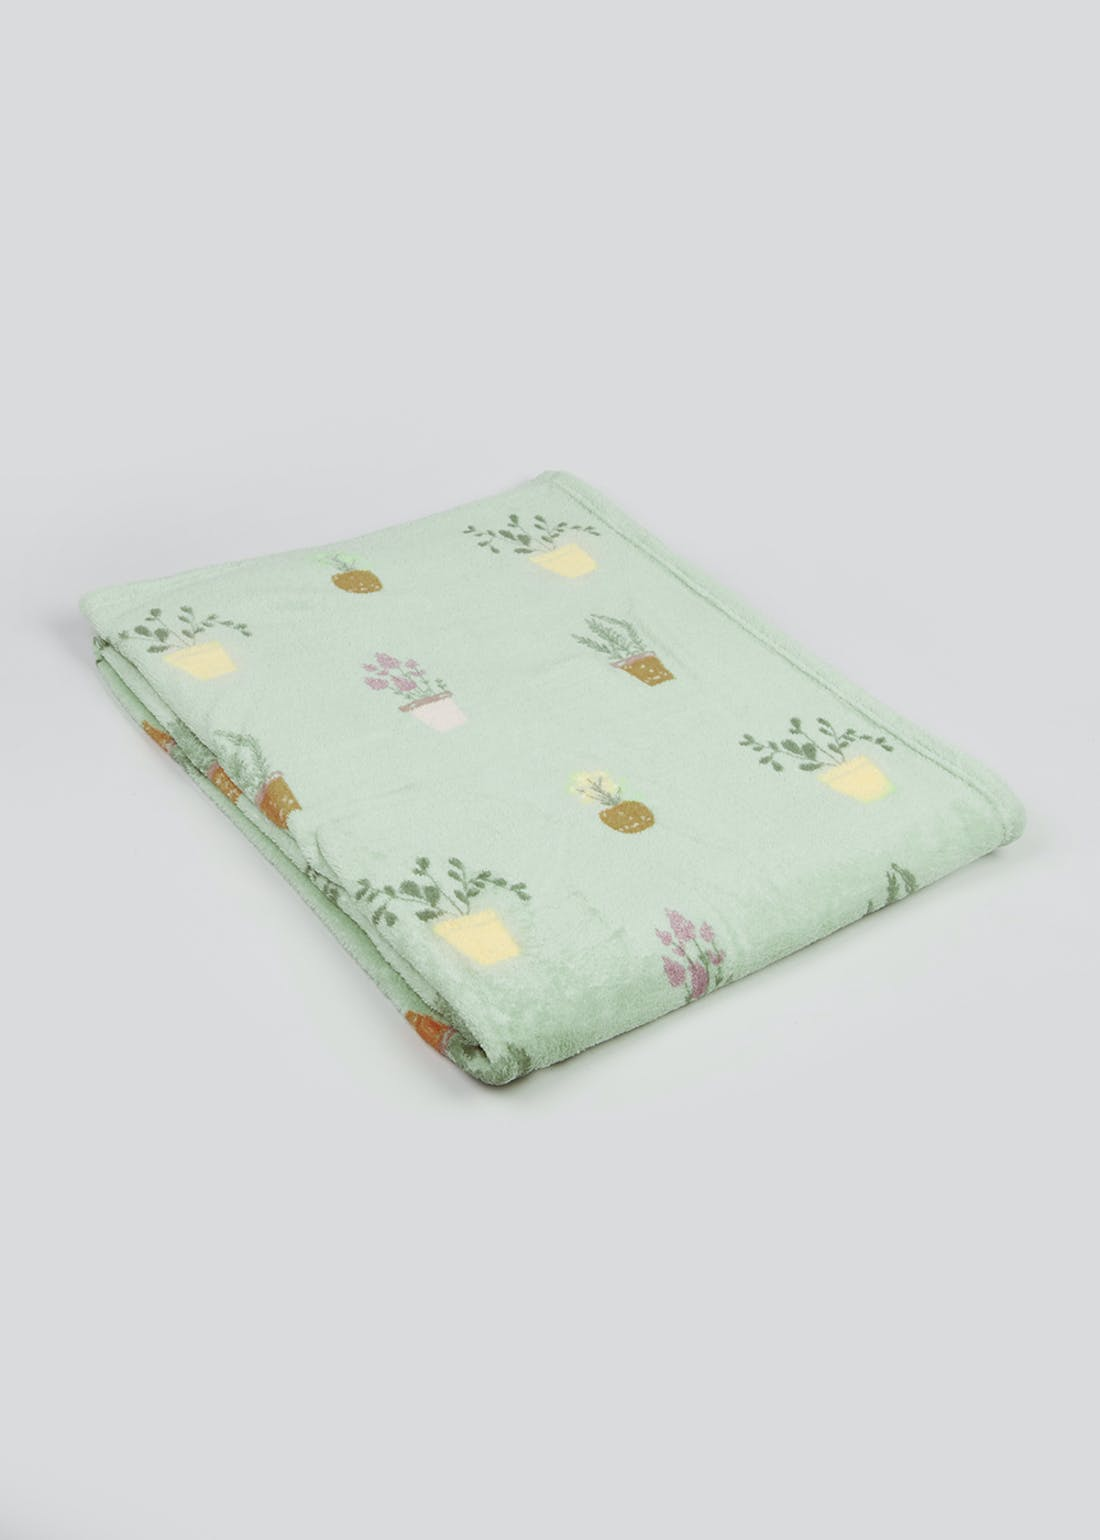 Plant Print Fleece Throw Blanket (150cm x 130cm)